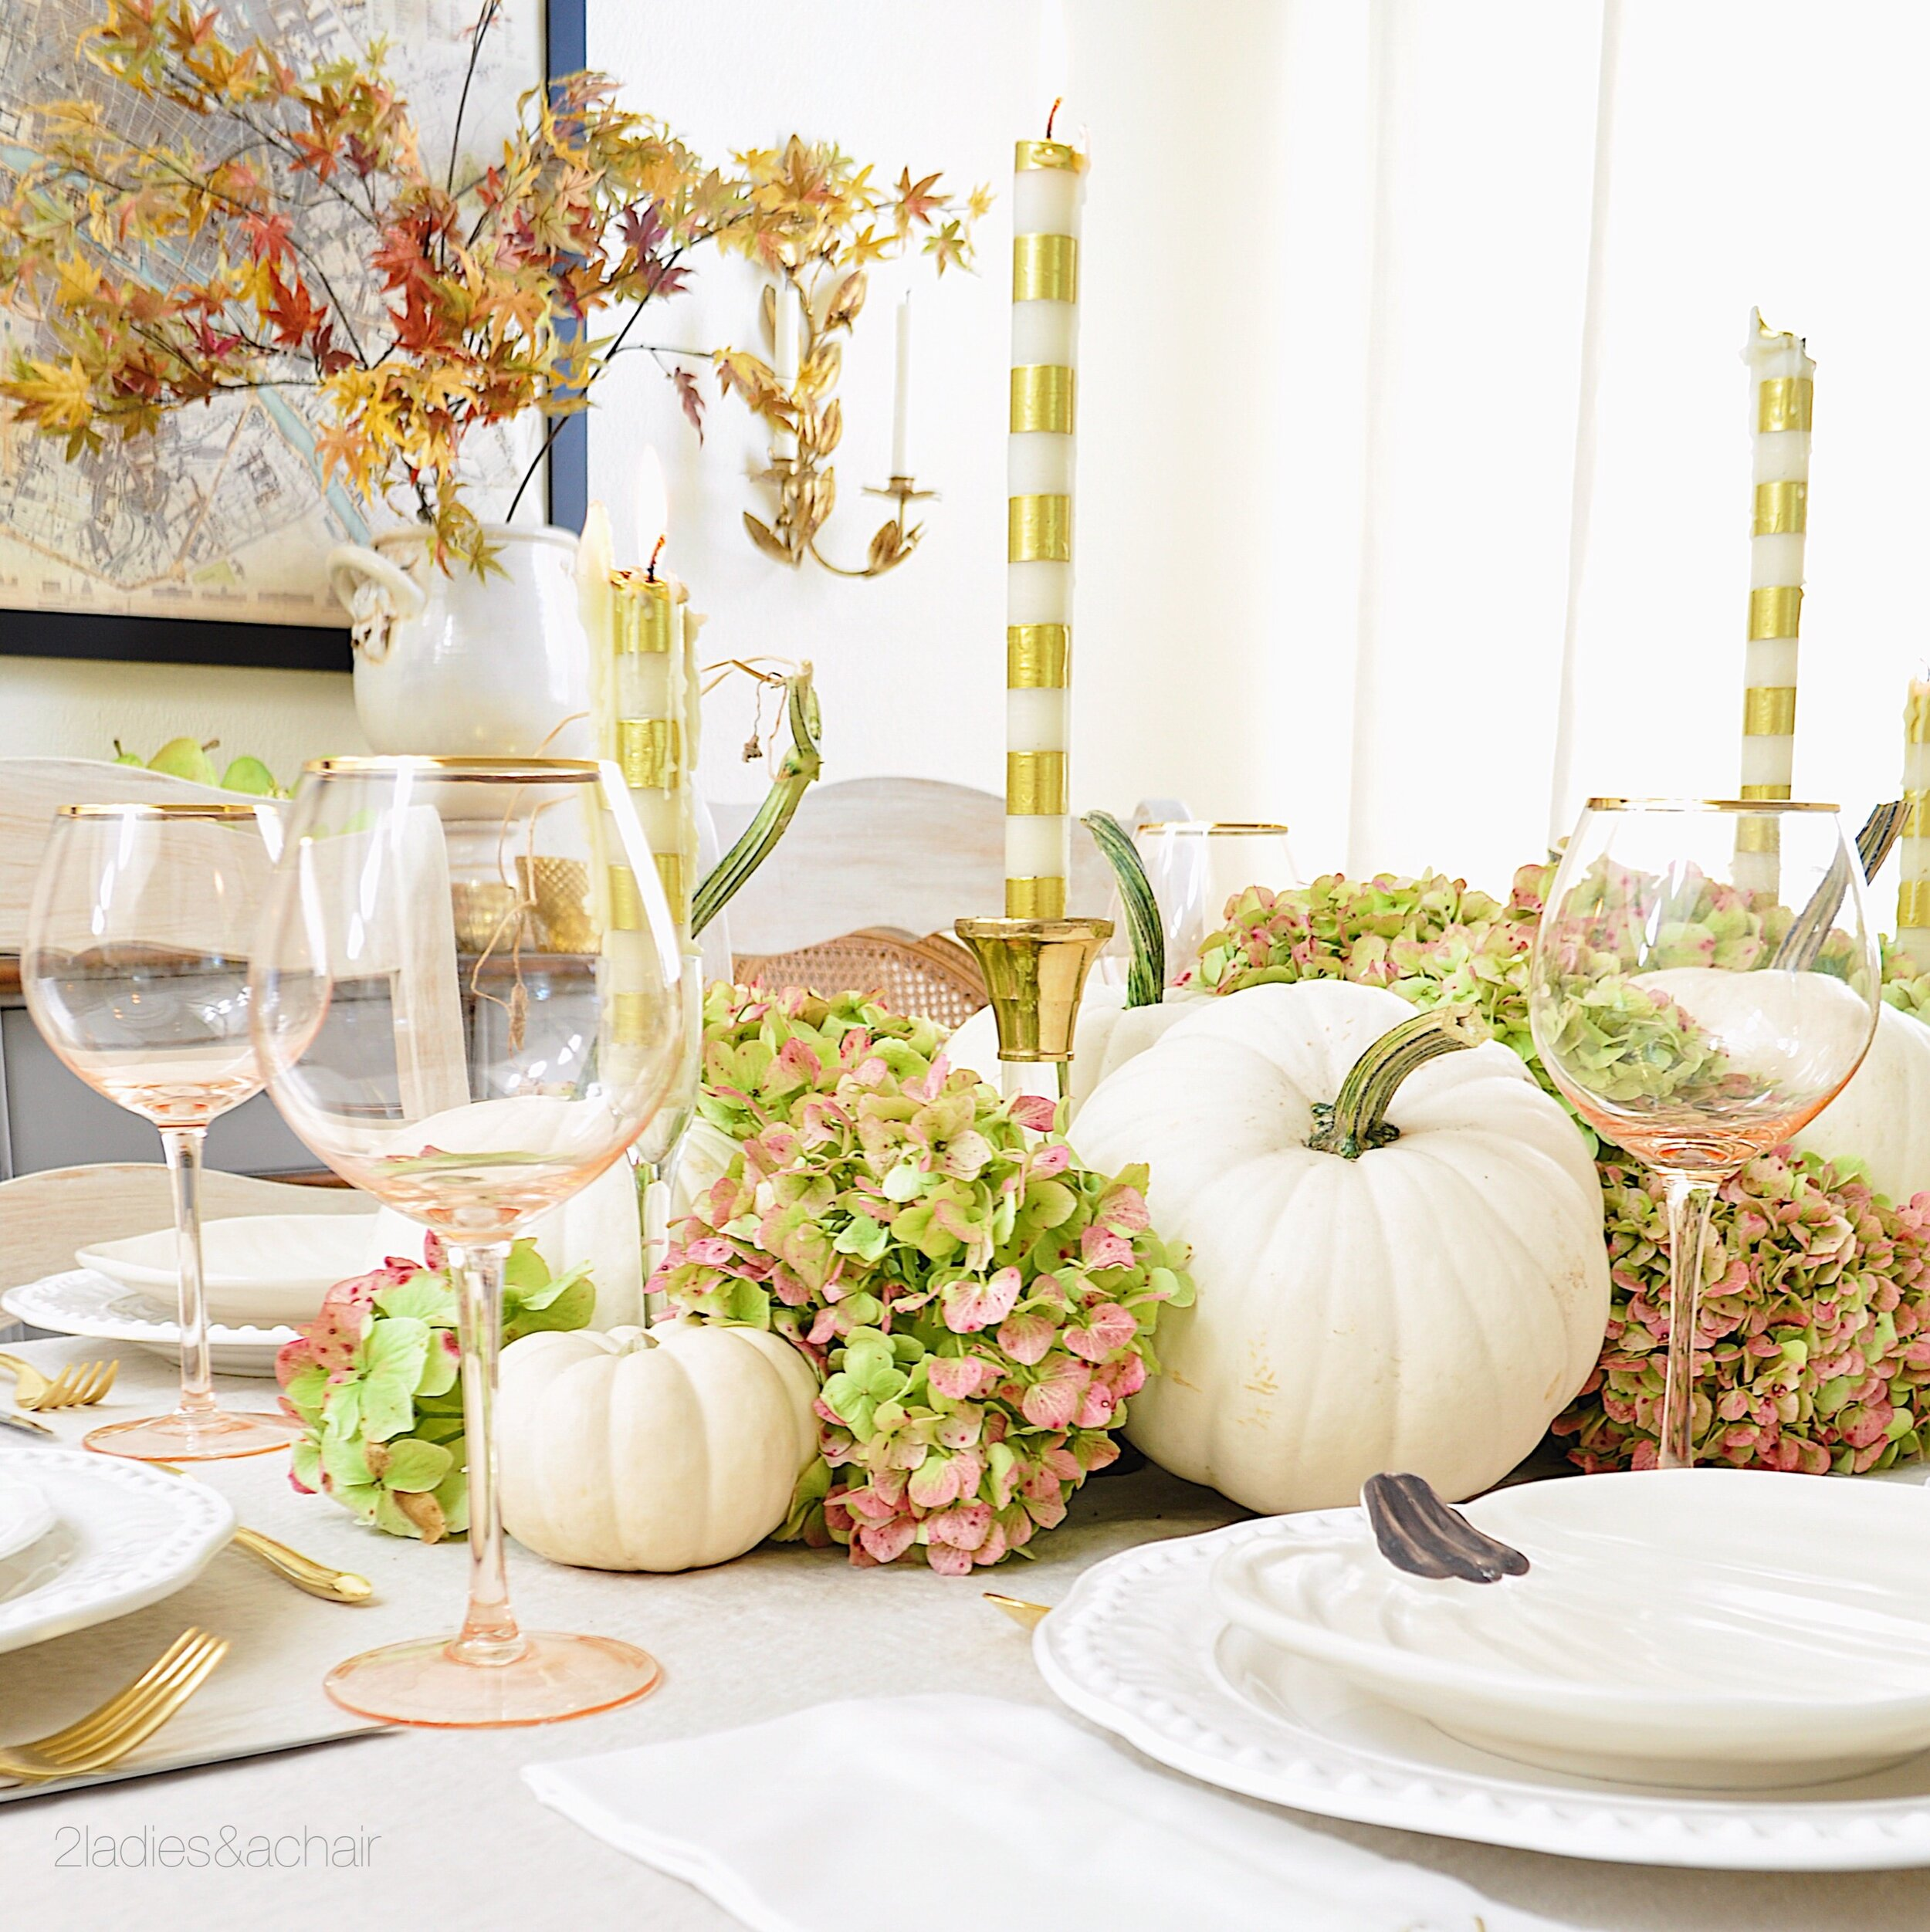 thanksgiving table IMG_1473.JPG